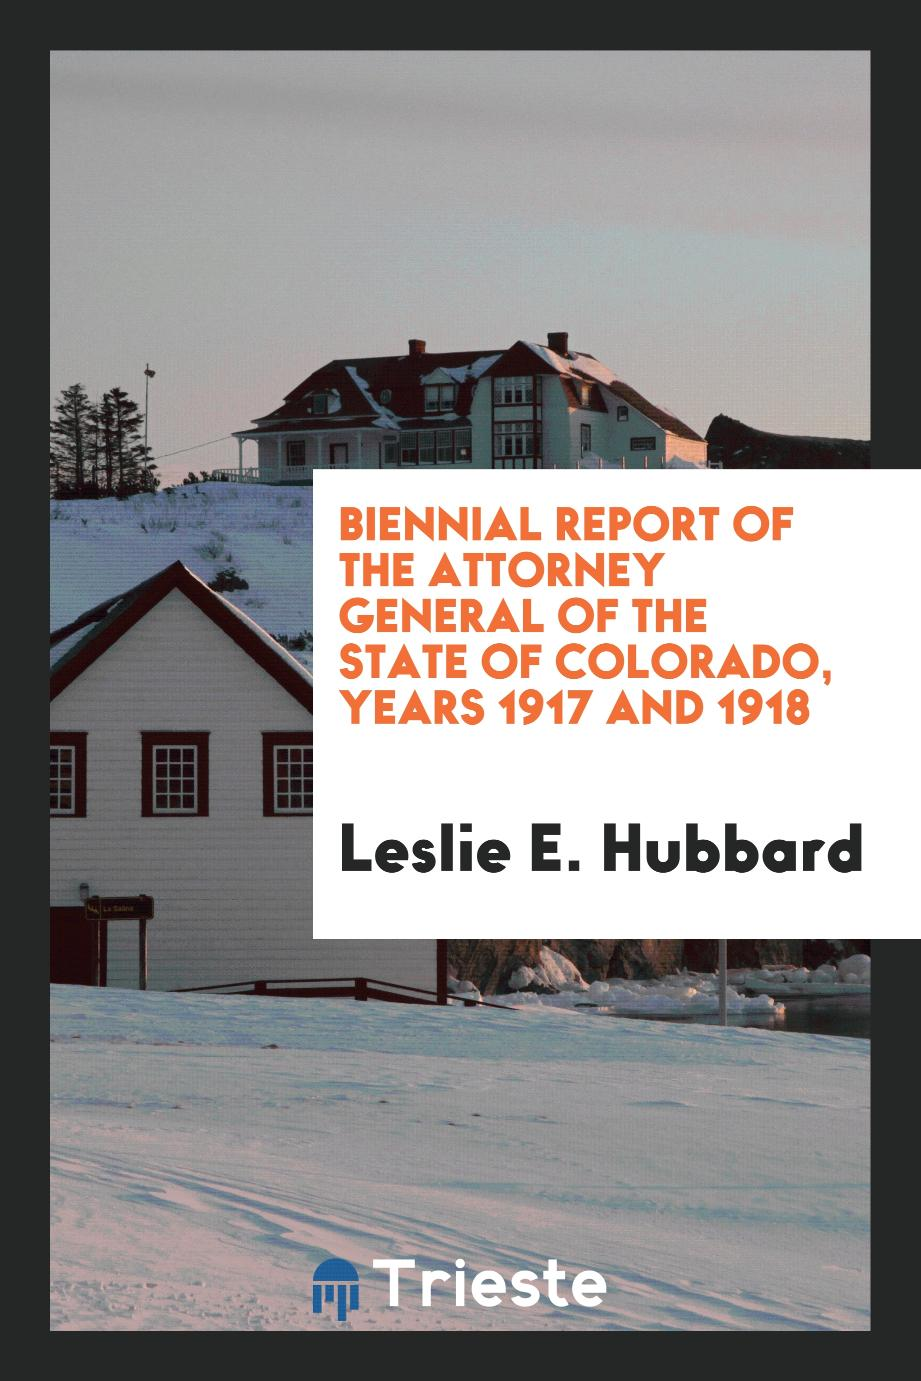 Biennial Report of the Attorney General of the State of Colorado, Years 1917 and 1918